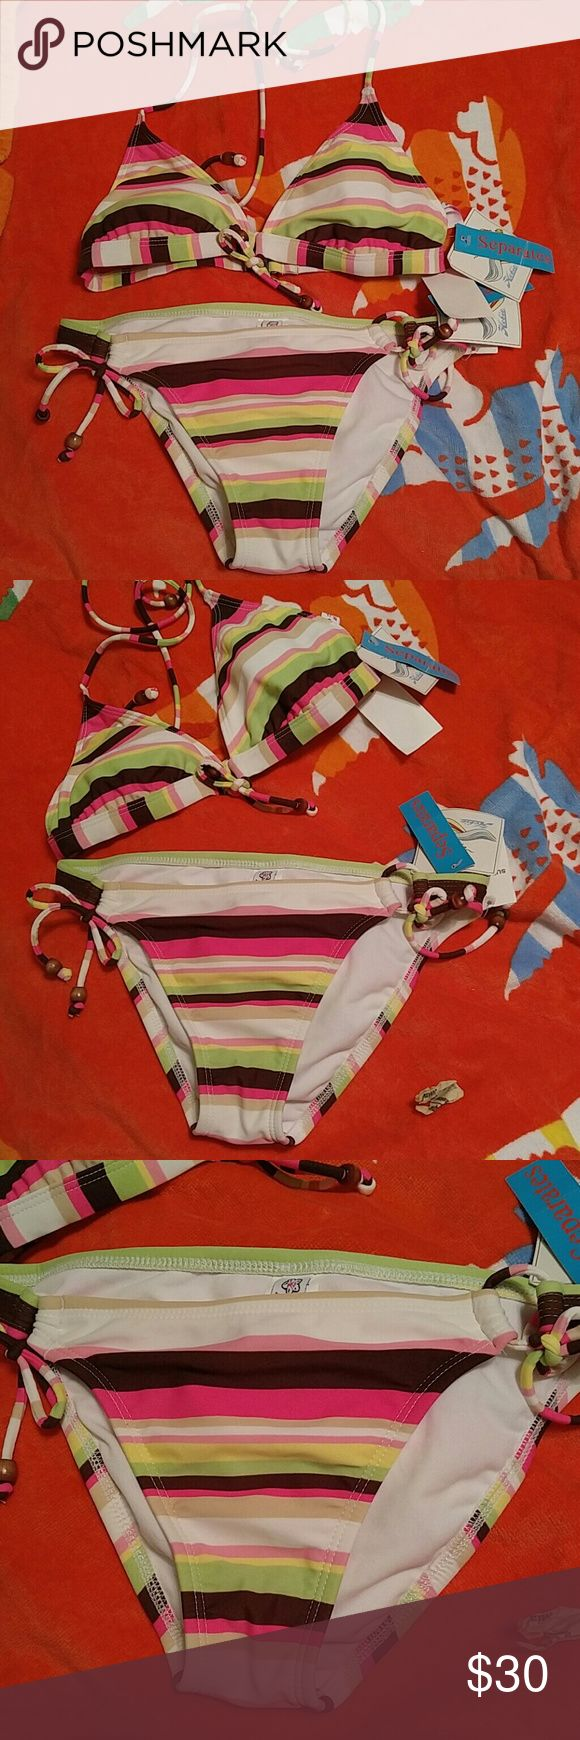 NWT Pink brown stripes 2pc swim bikini set M jrs Too cute & fun for the sun. Loop ties at breast & side ties. Removable pads. Each set is a little different due to cut of fabric so if I have multiples they may be different. Tags may show immediate markdowns. Items from Macy's prev seasons, returns & sales. Dust is free,  Bundle & save more. Hobie Swim Bikinis